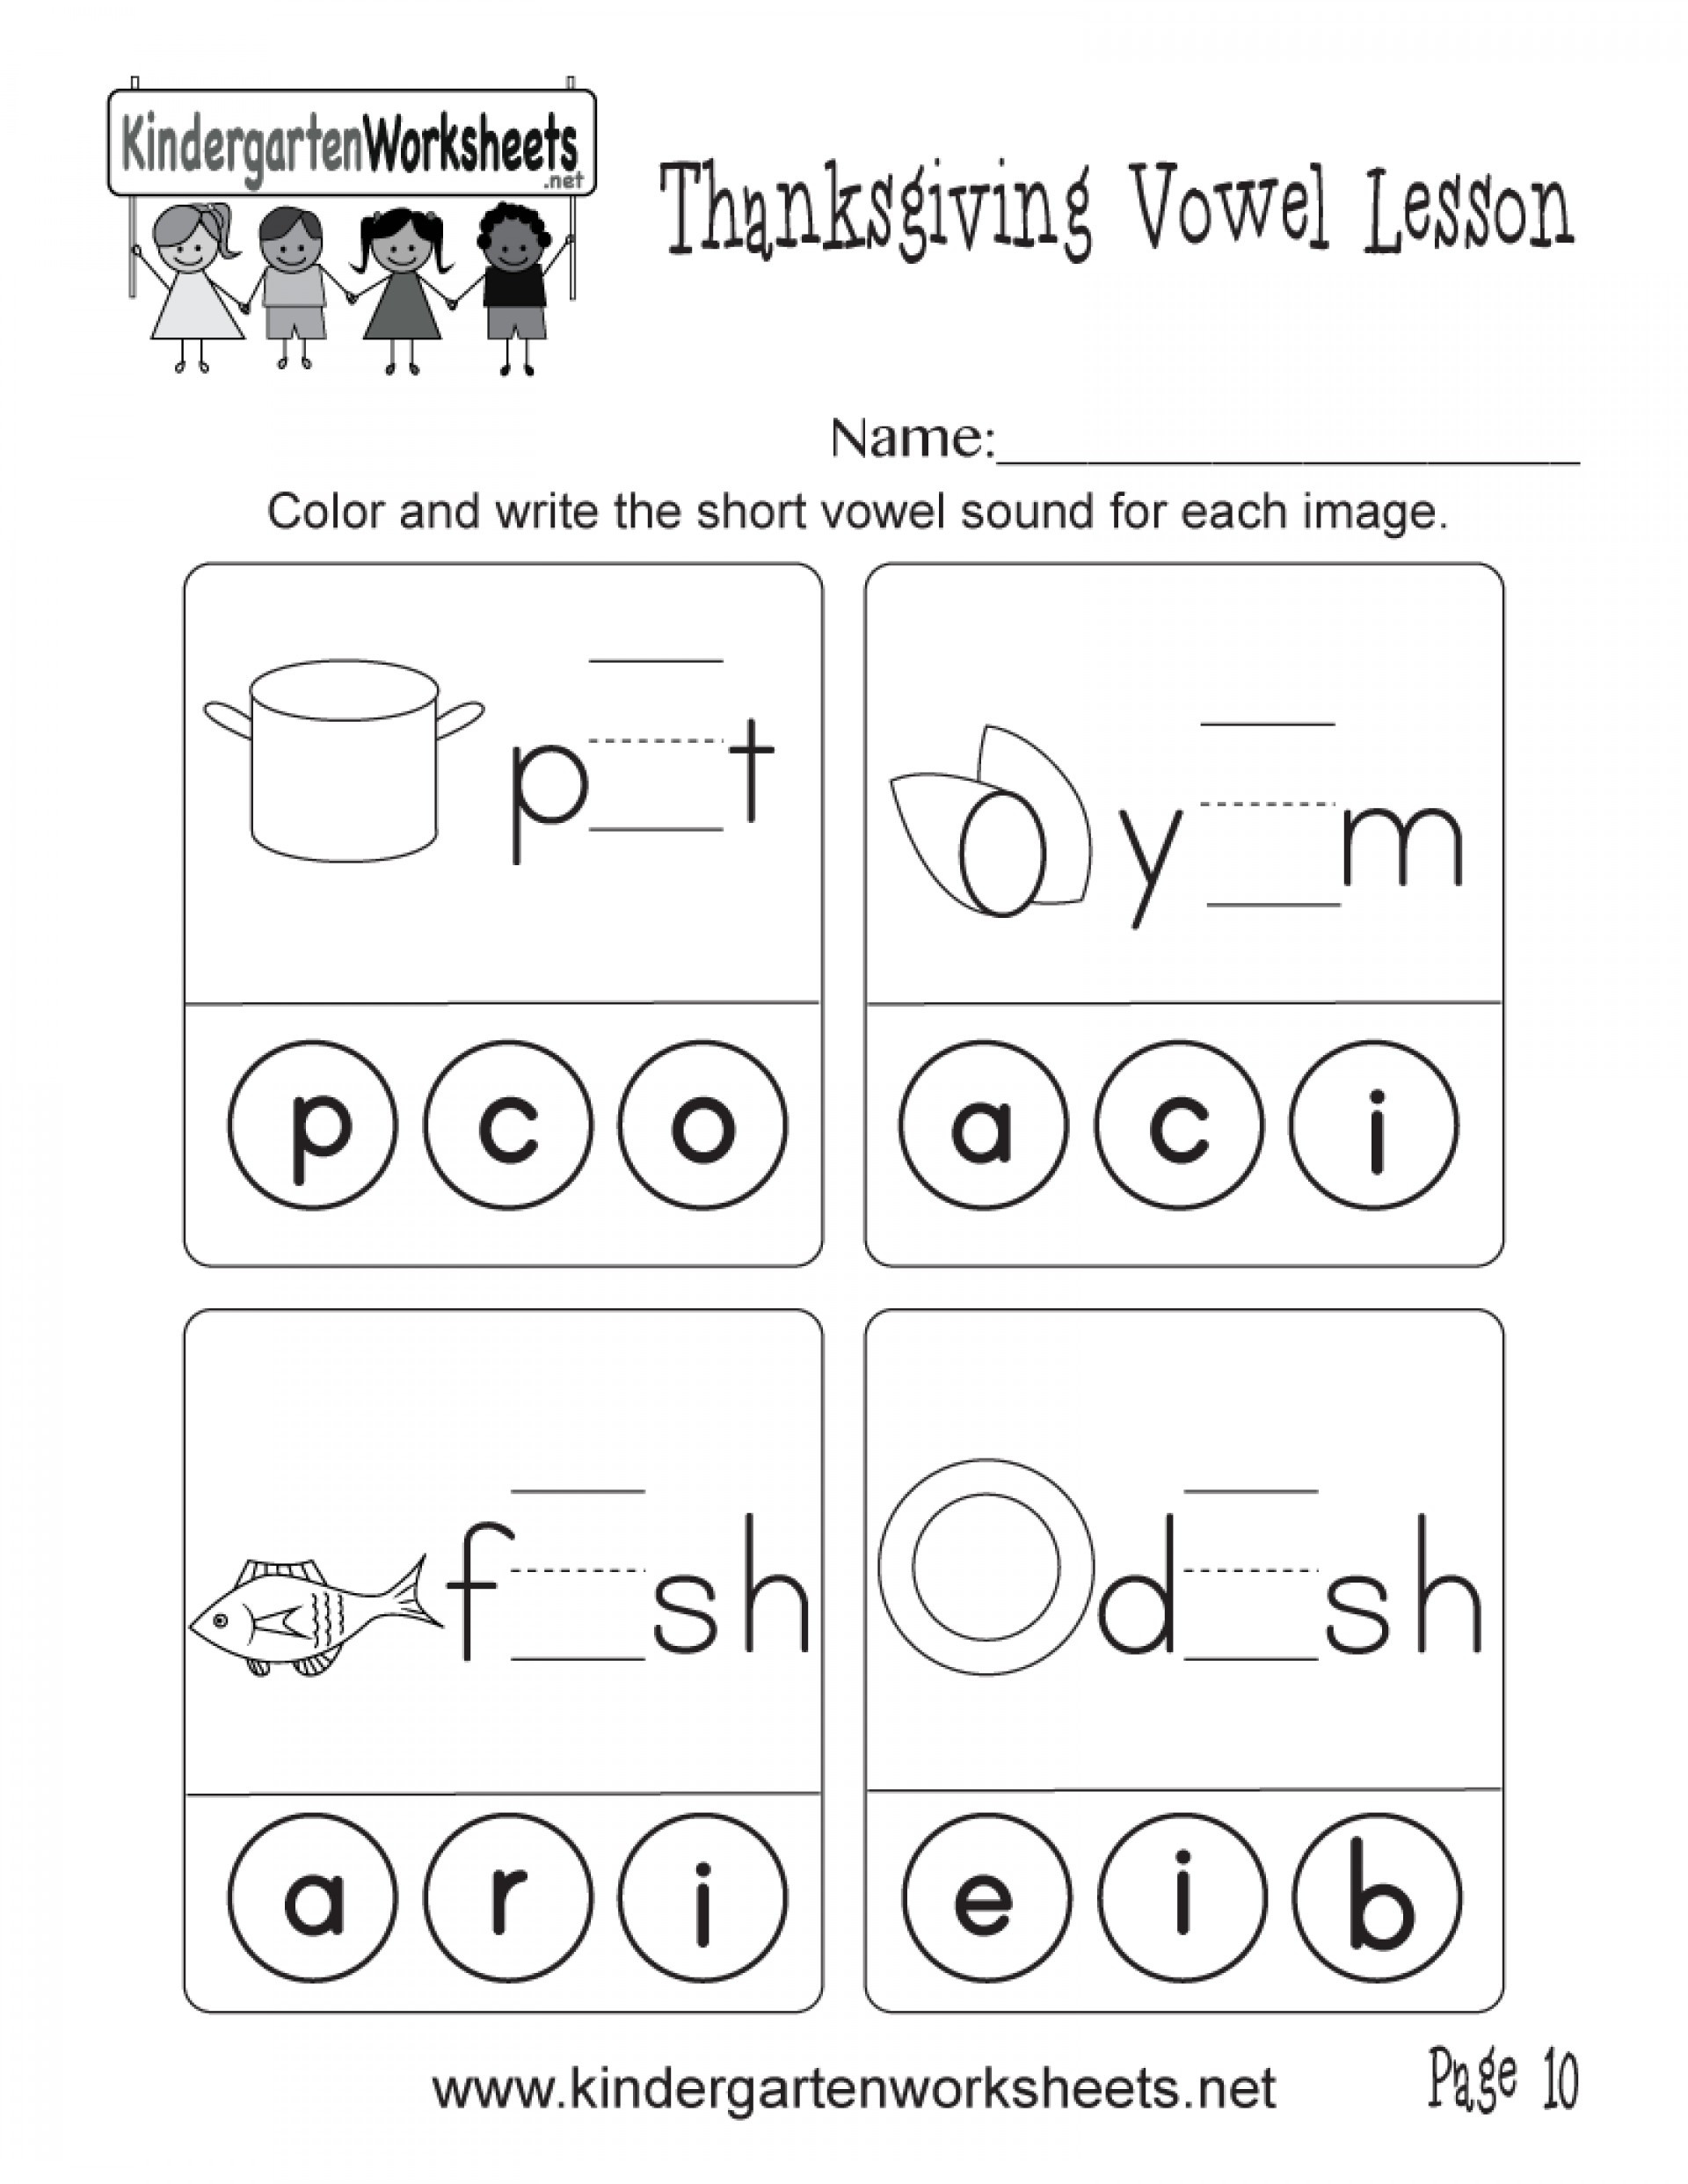 Short Vowel Worksheets 2nd Grade 4 Short Vowel Worksheets 1st Grade Worksheets